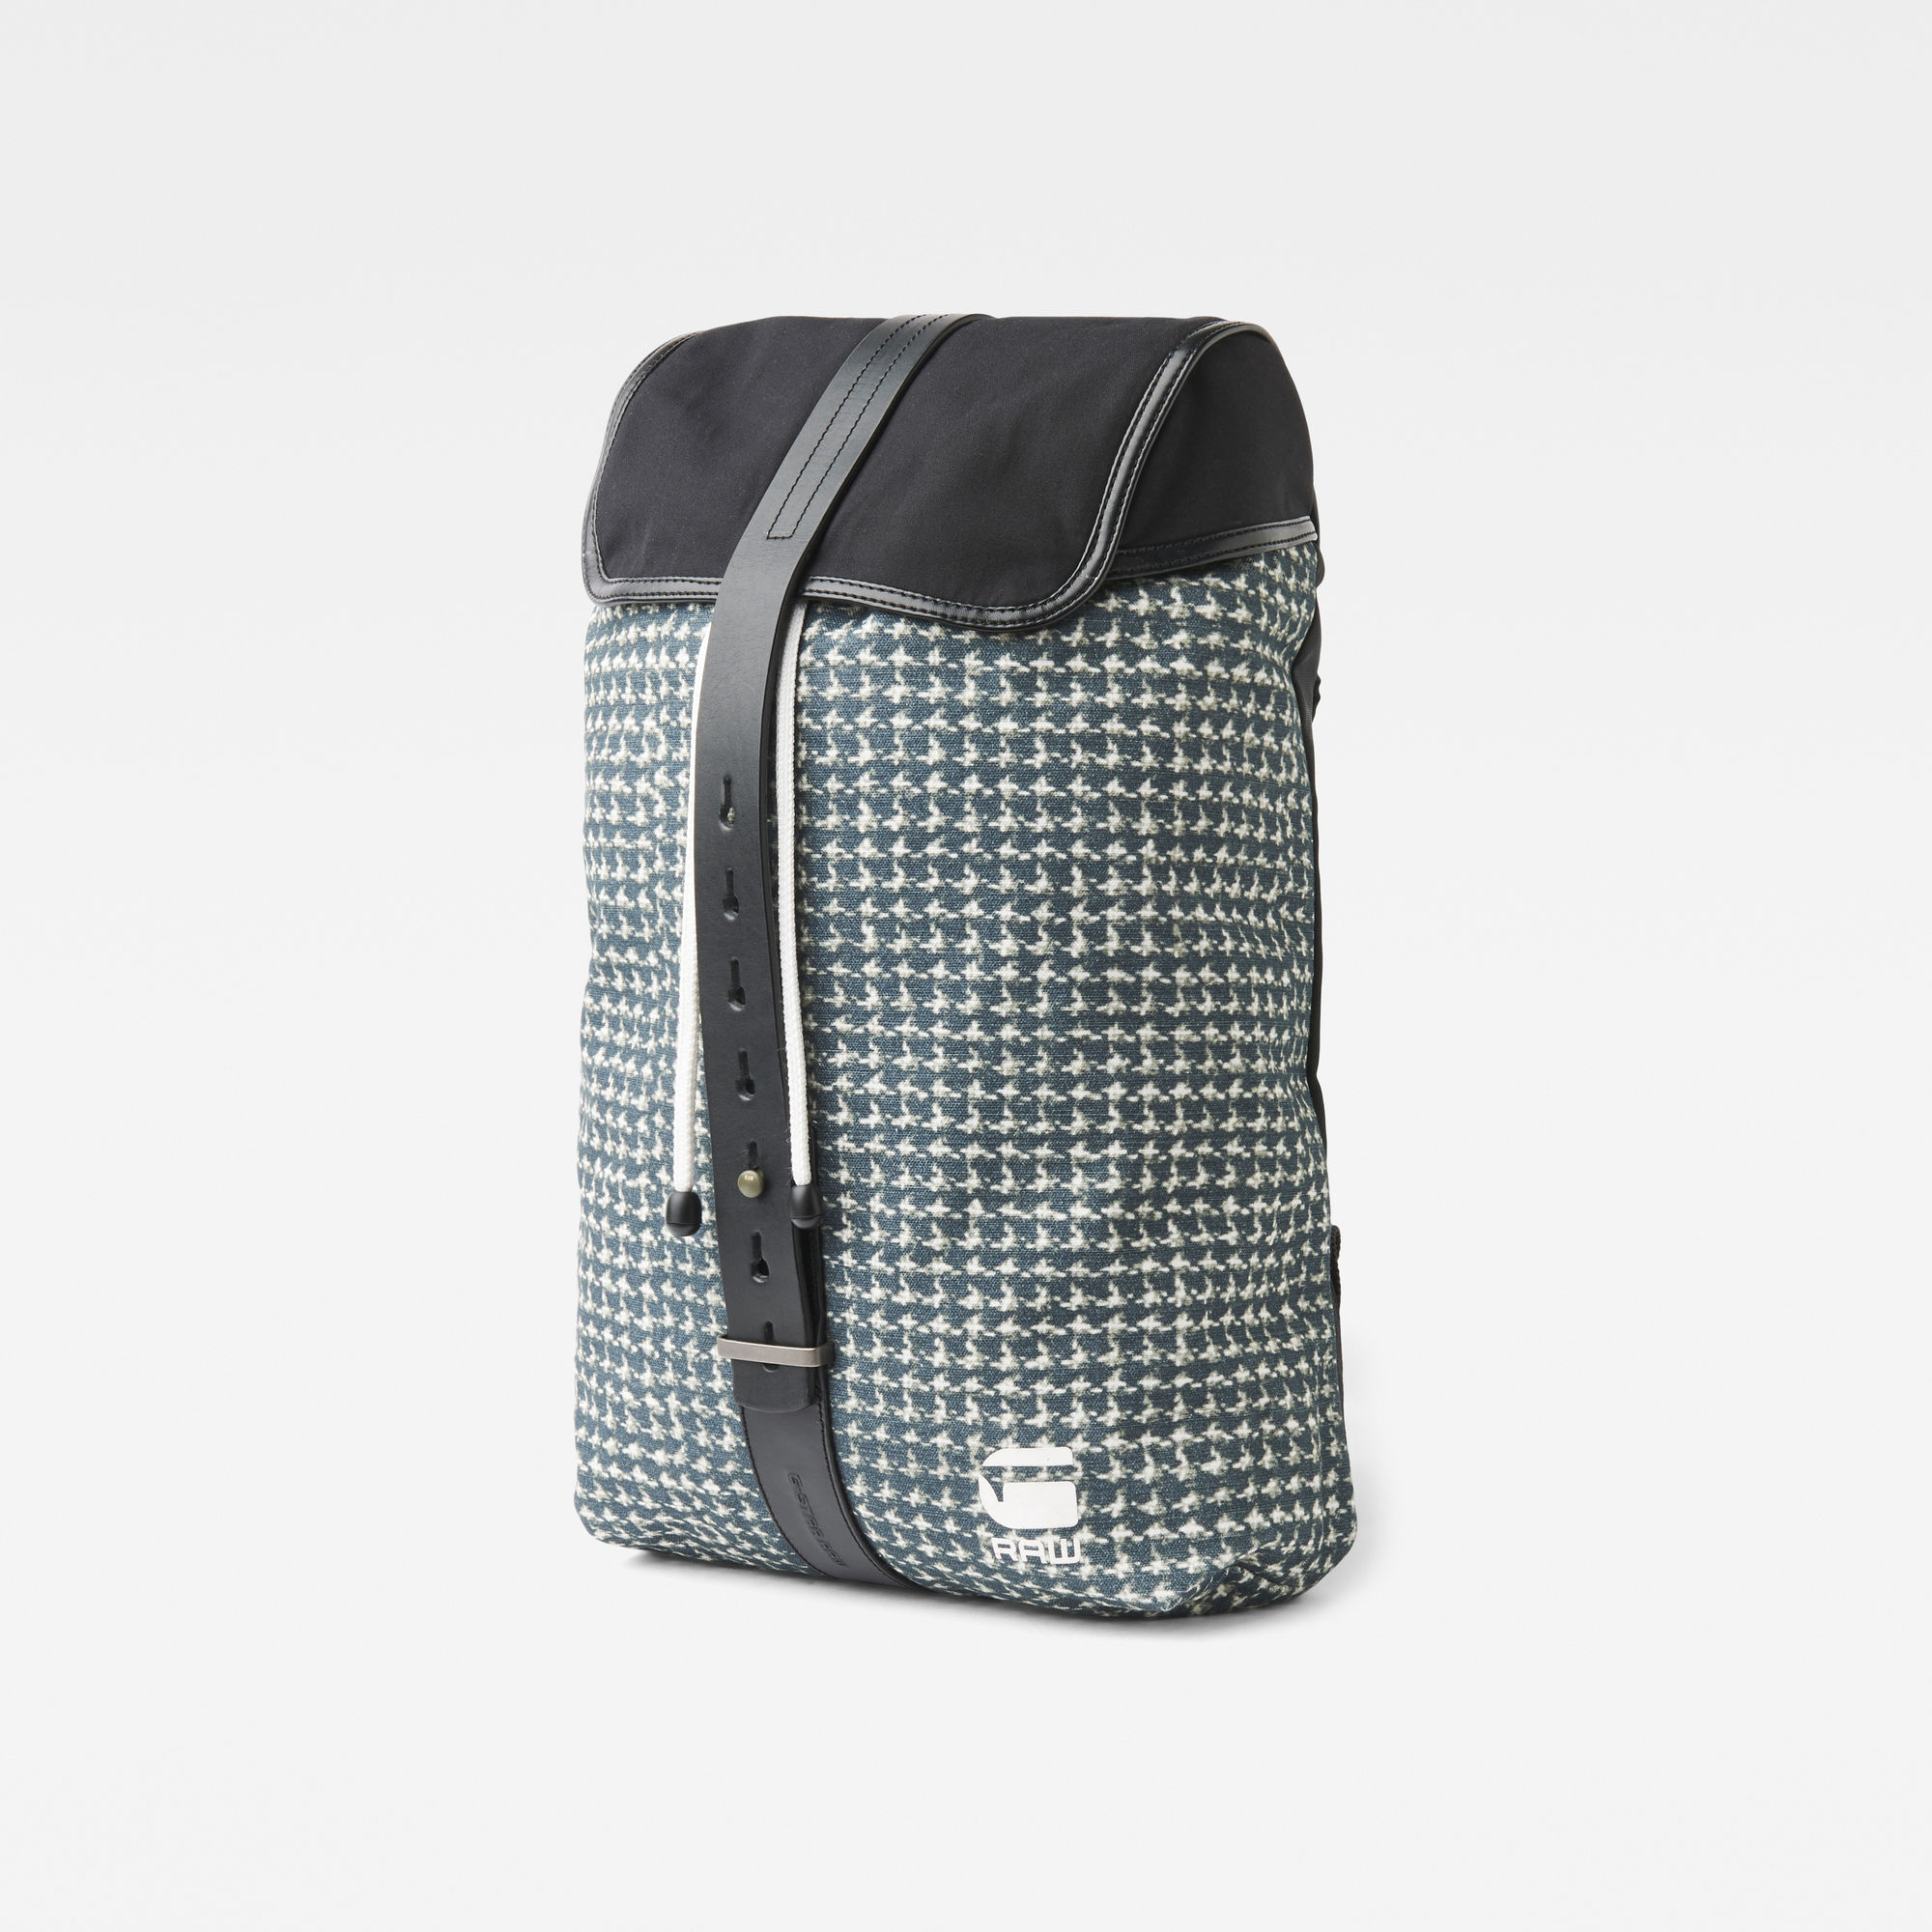 Image of G Star Raw Vaan Backpack